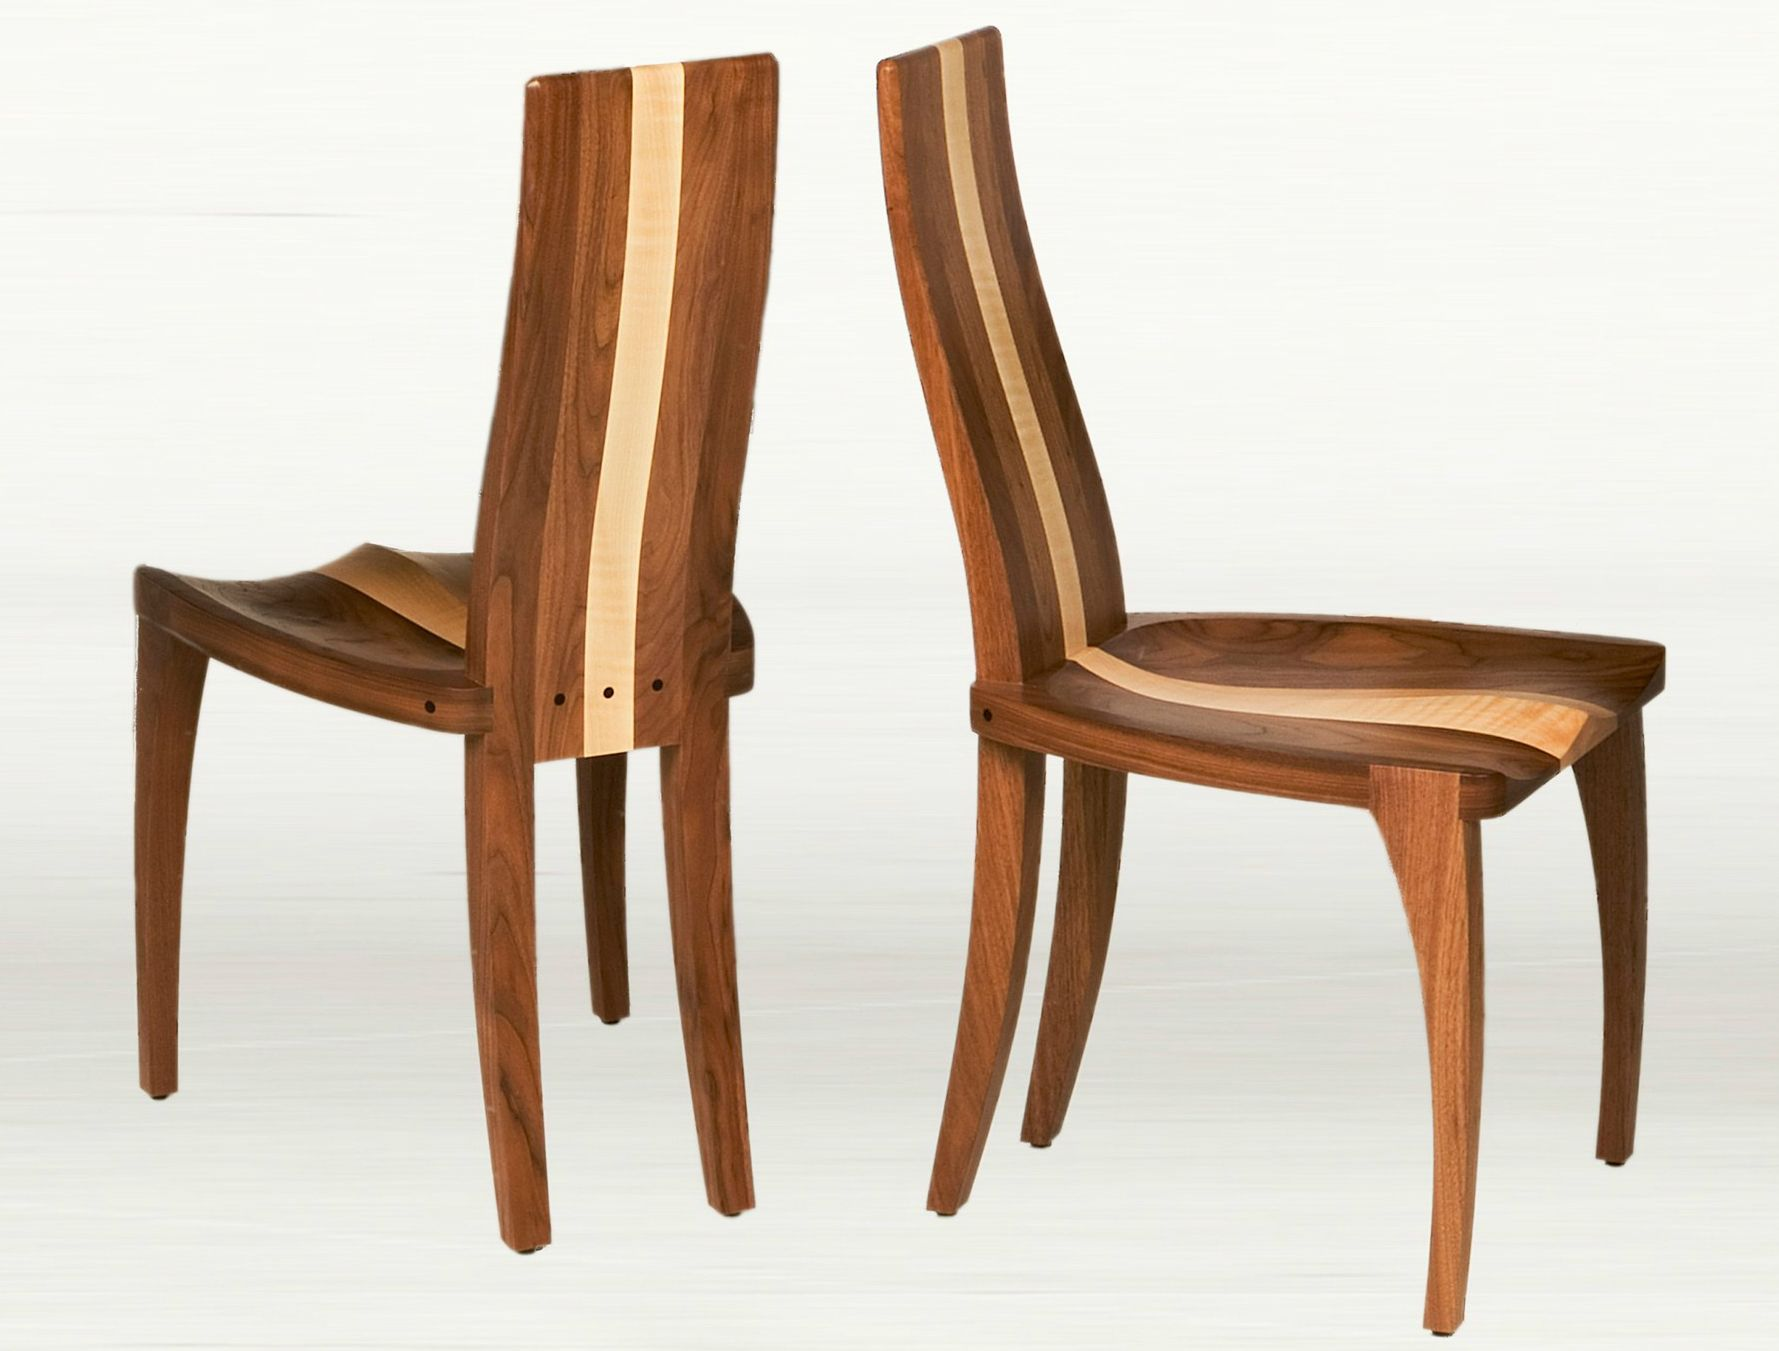 Custom Made Modern Dining Chair In Solid Walnut Wood With Carved Seat Comfortable Curved Back Modern Wood Dining Chair Custom Dining Chairs Wood Dining Chairs